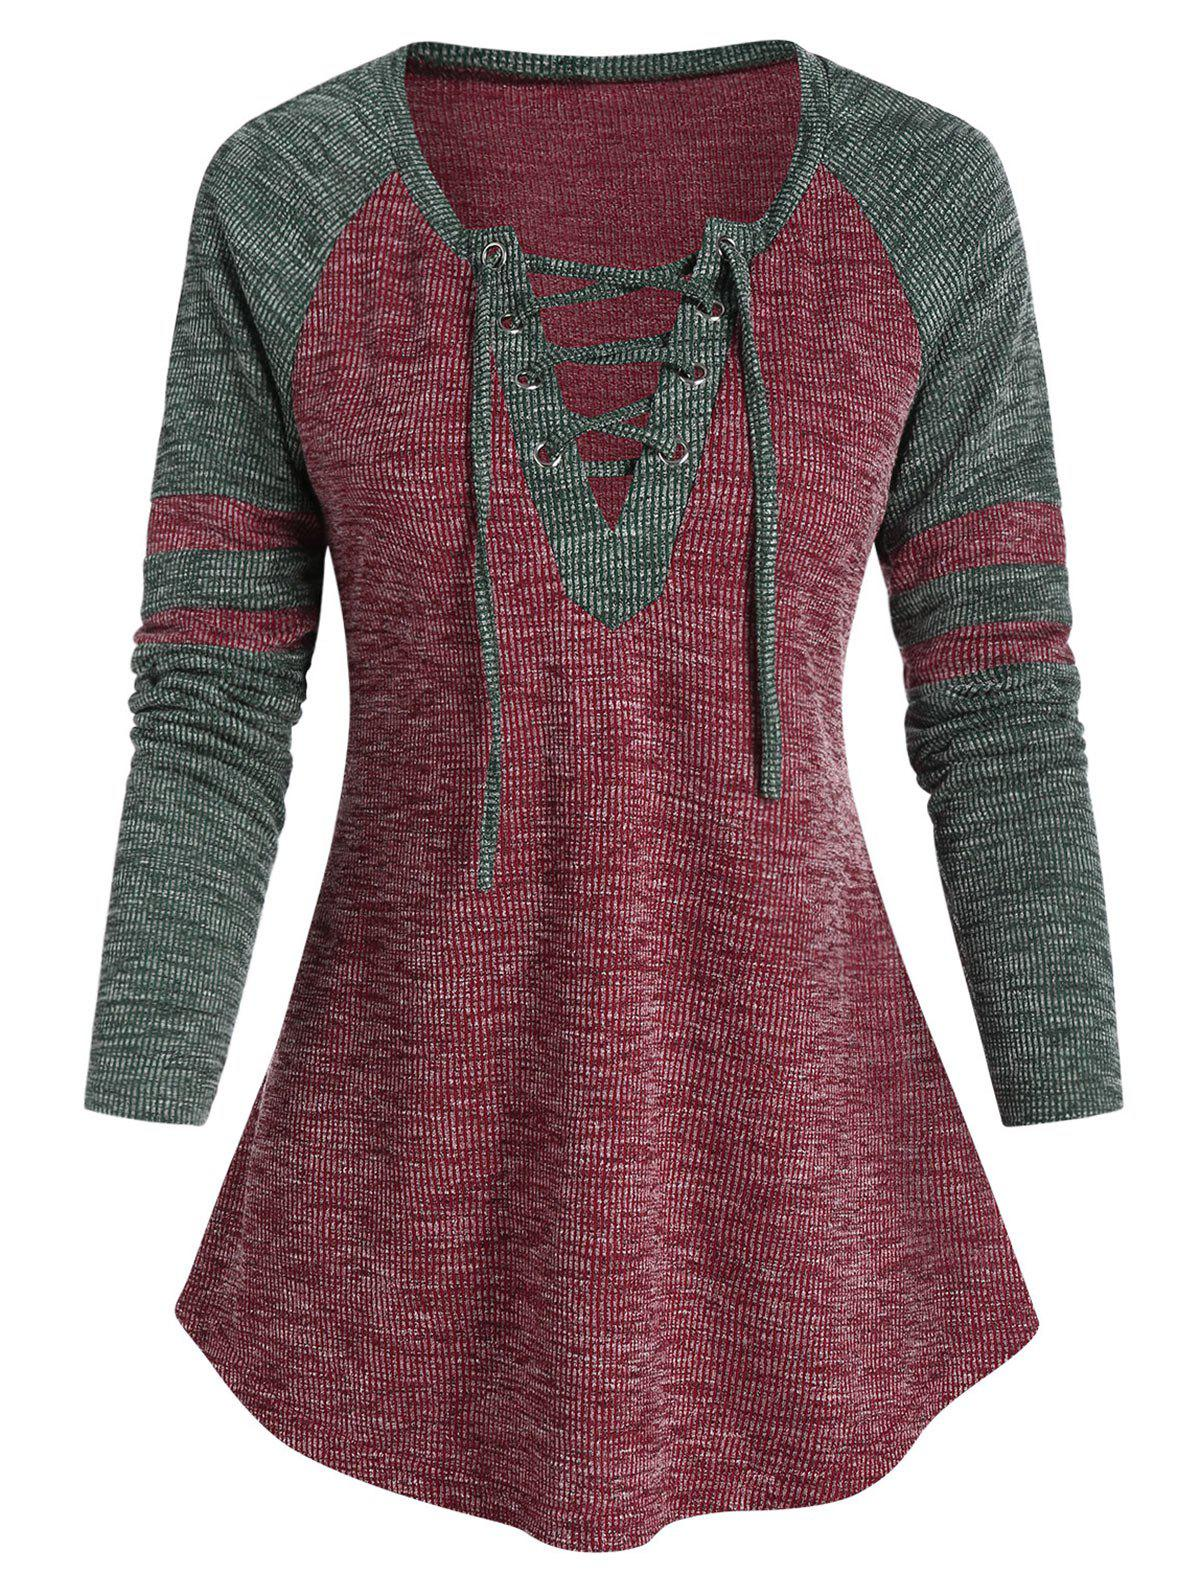 Raglan Sleeve Lace-up Contrast Ribbed T-shirt - RED WINE XL